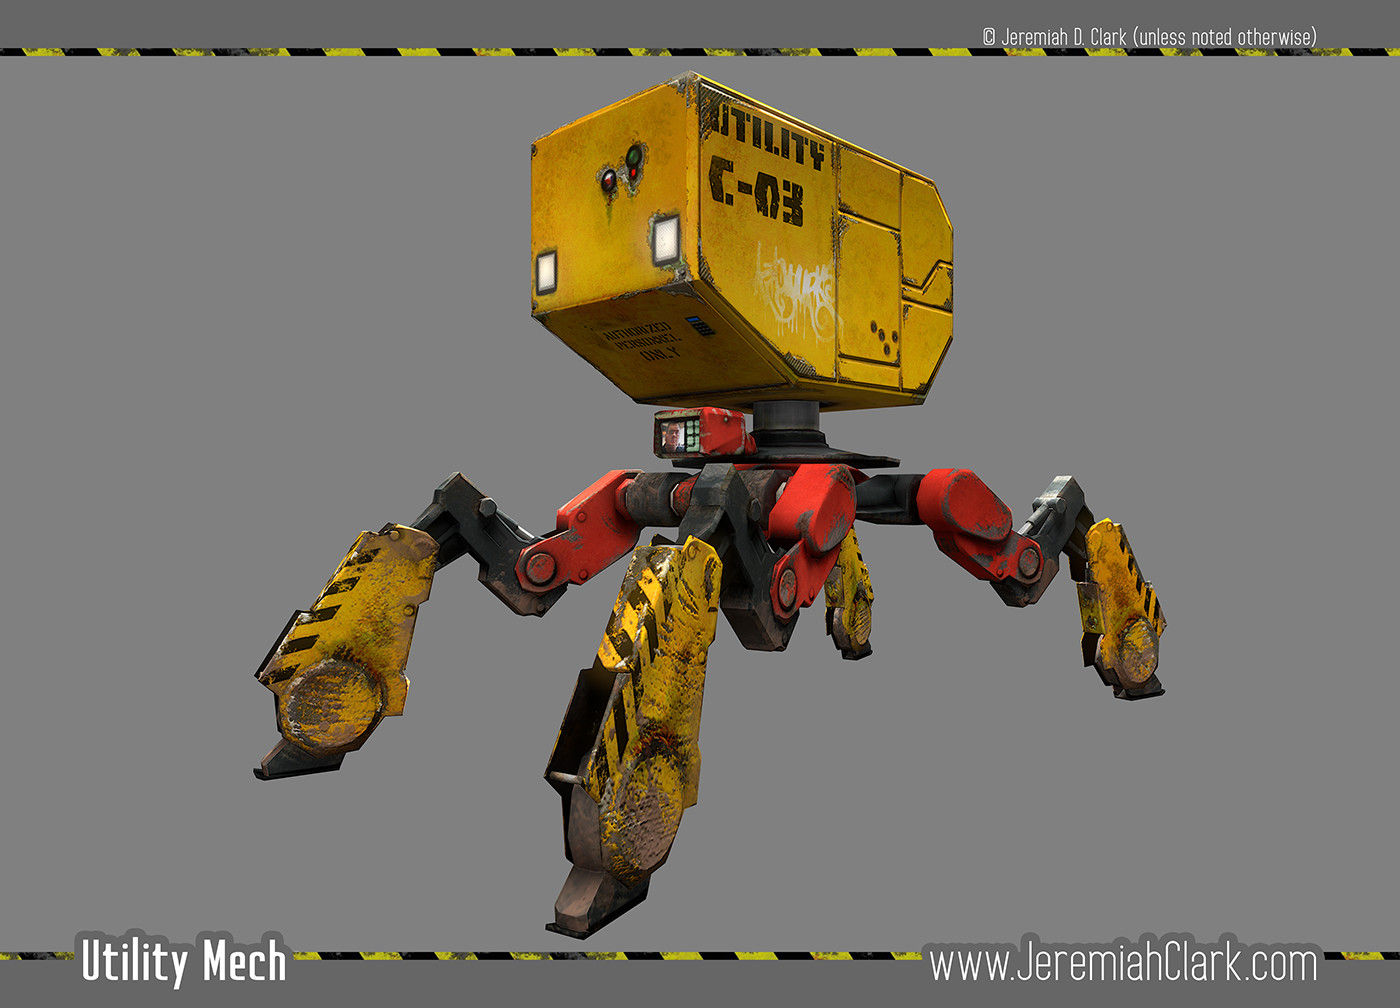 Utility Mech - Capture from Marmoset Toolbag 2